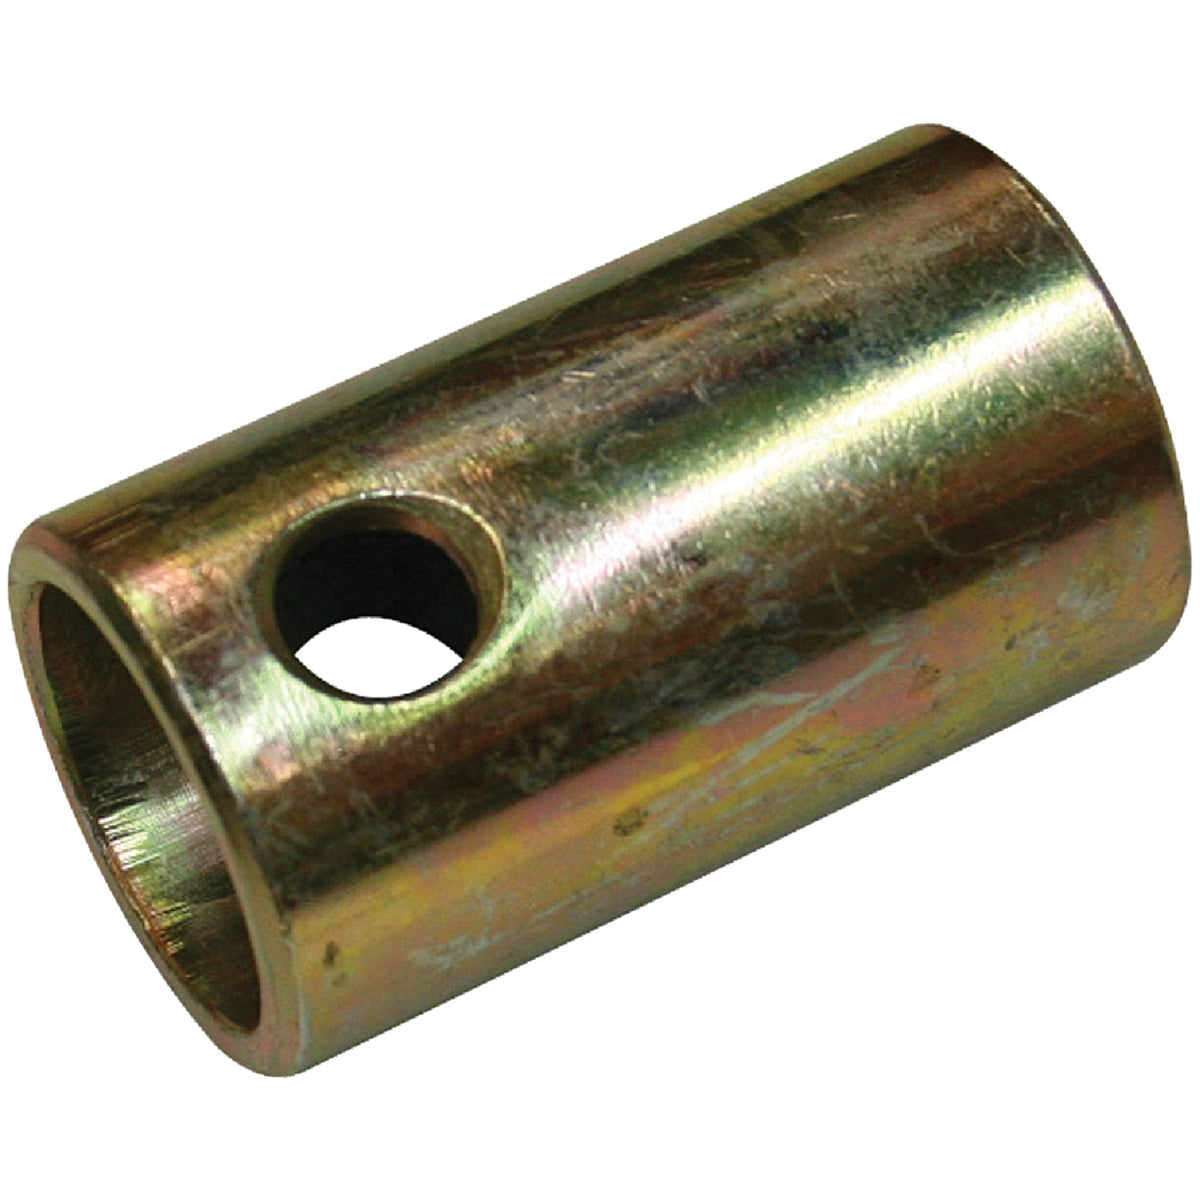 LIFT ARM REDUCNG BUSHING - S08031200-B8312 by Speeco Farmex